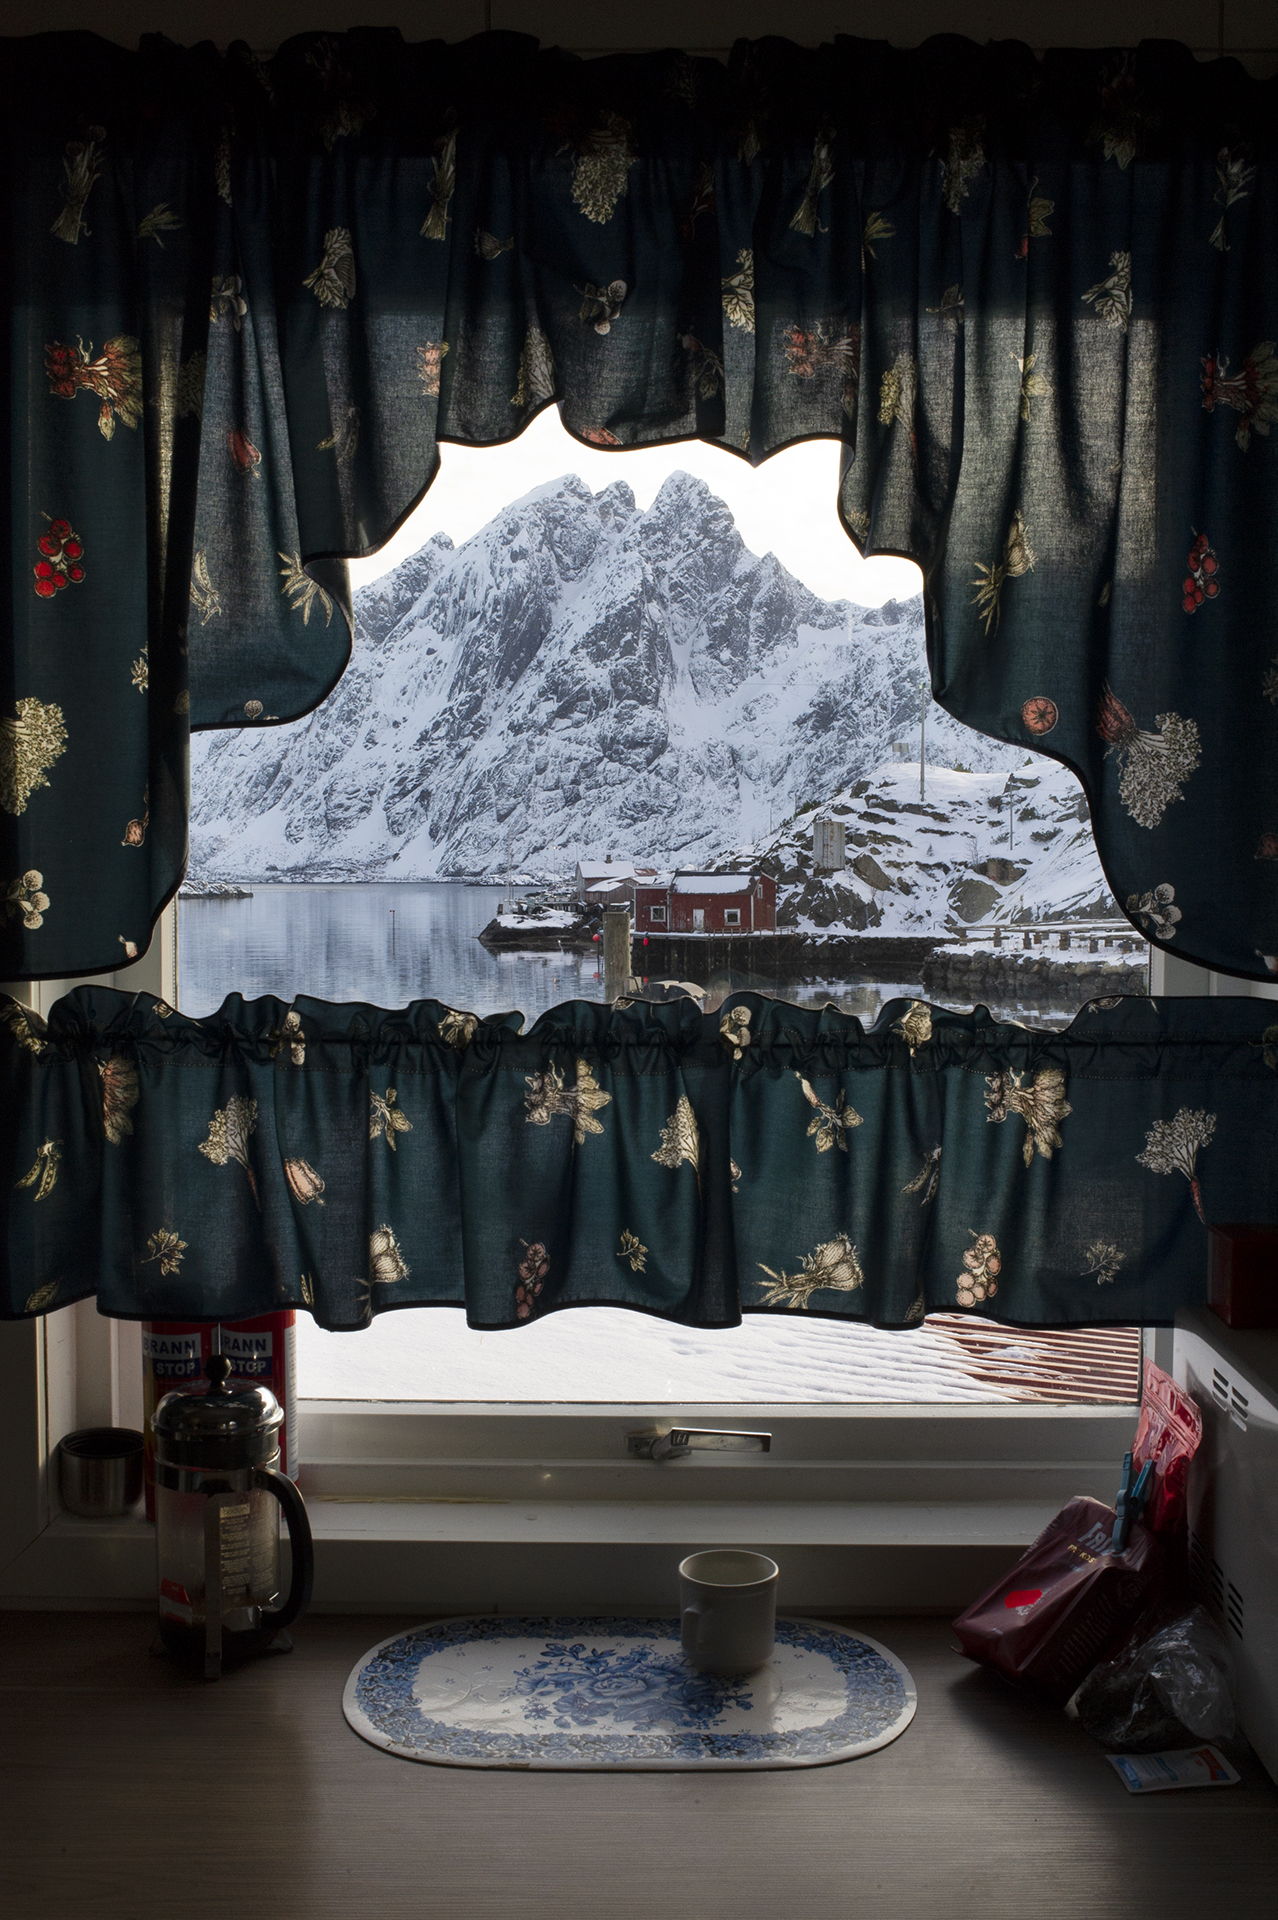 Sund. From the book The Lofoten Fishery.